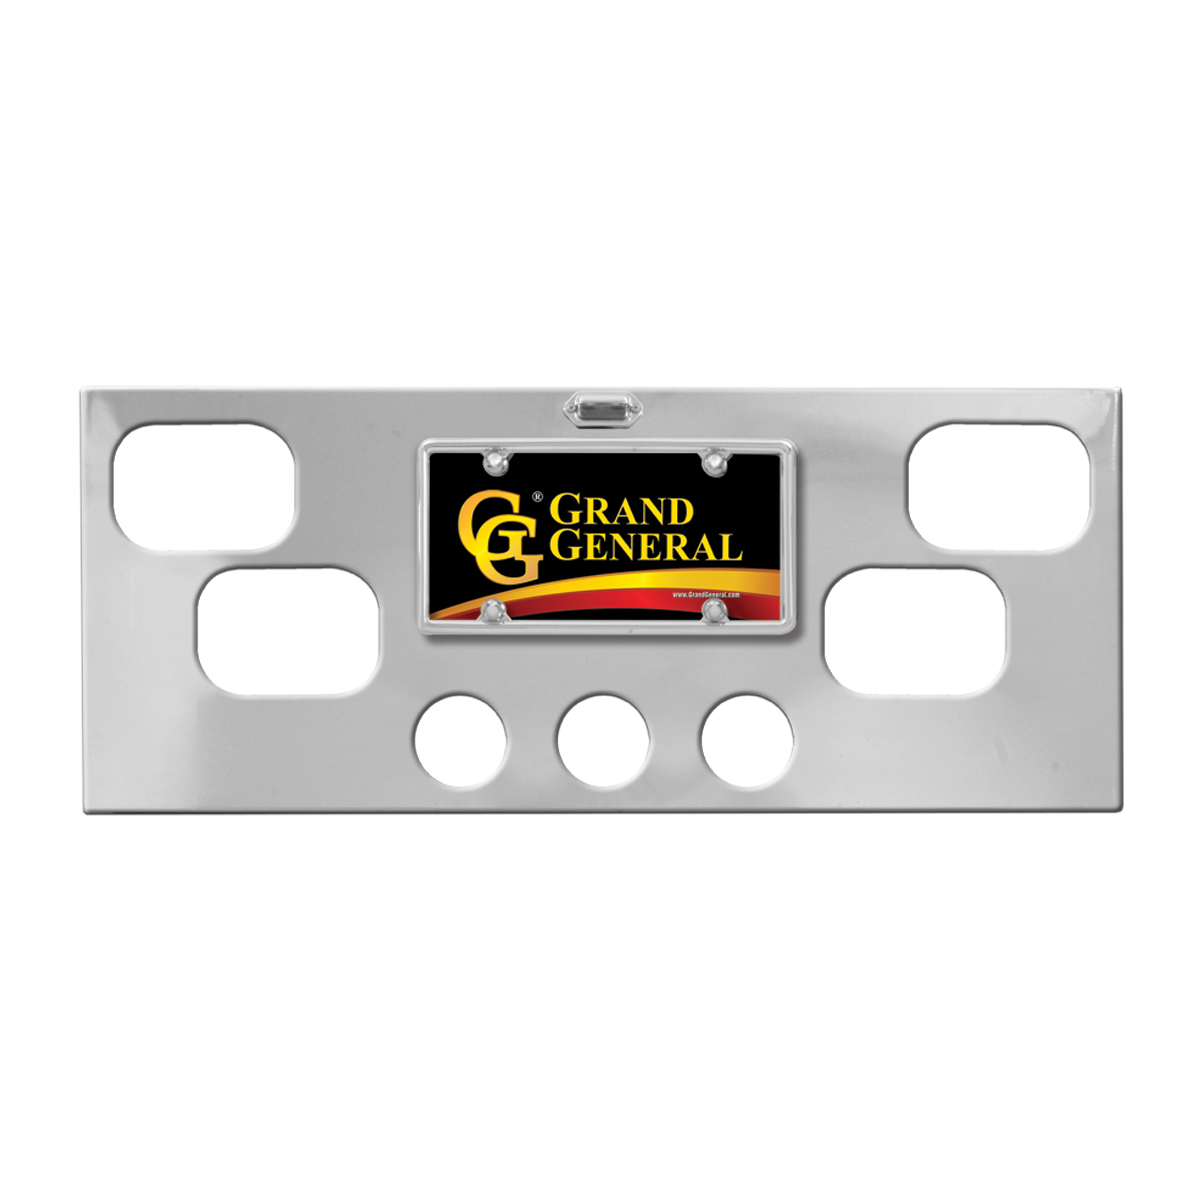 #91668 Chrome Plated Steel Panel Only